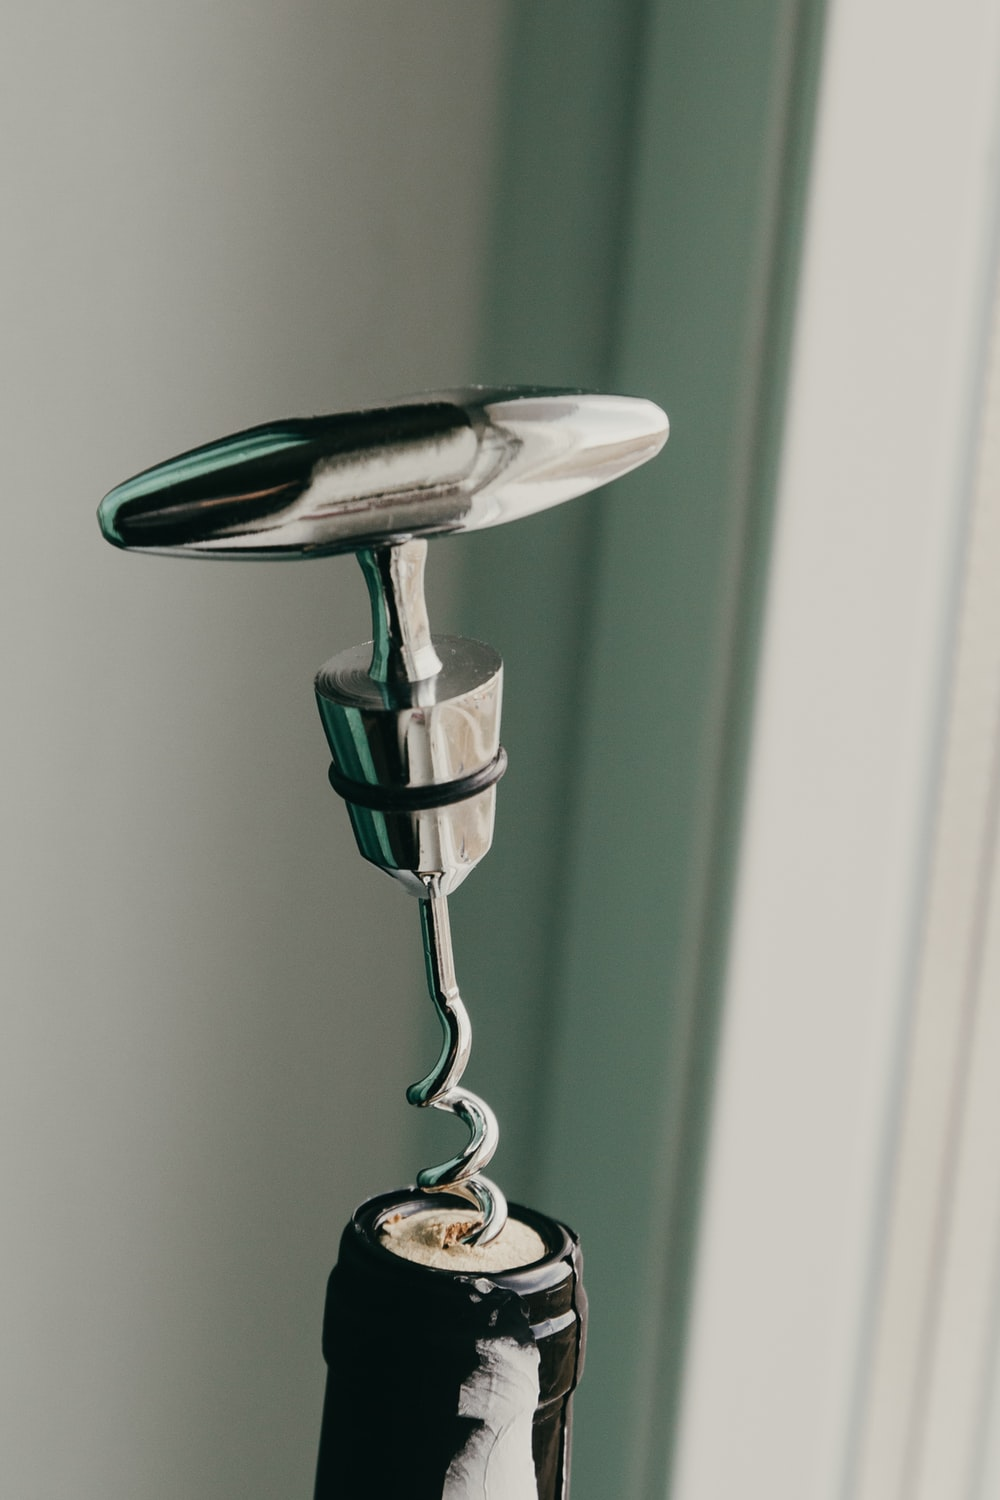 silver and black steel faucet